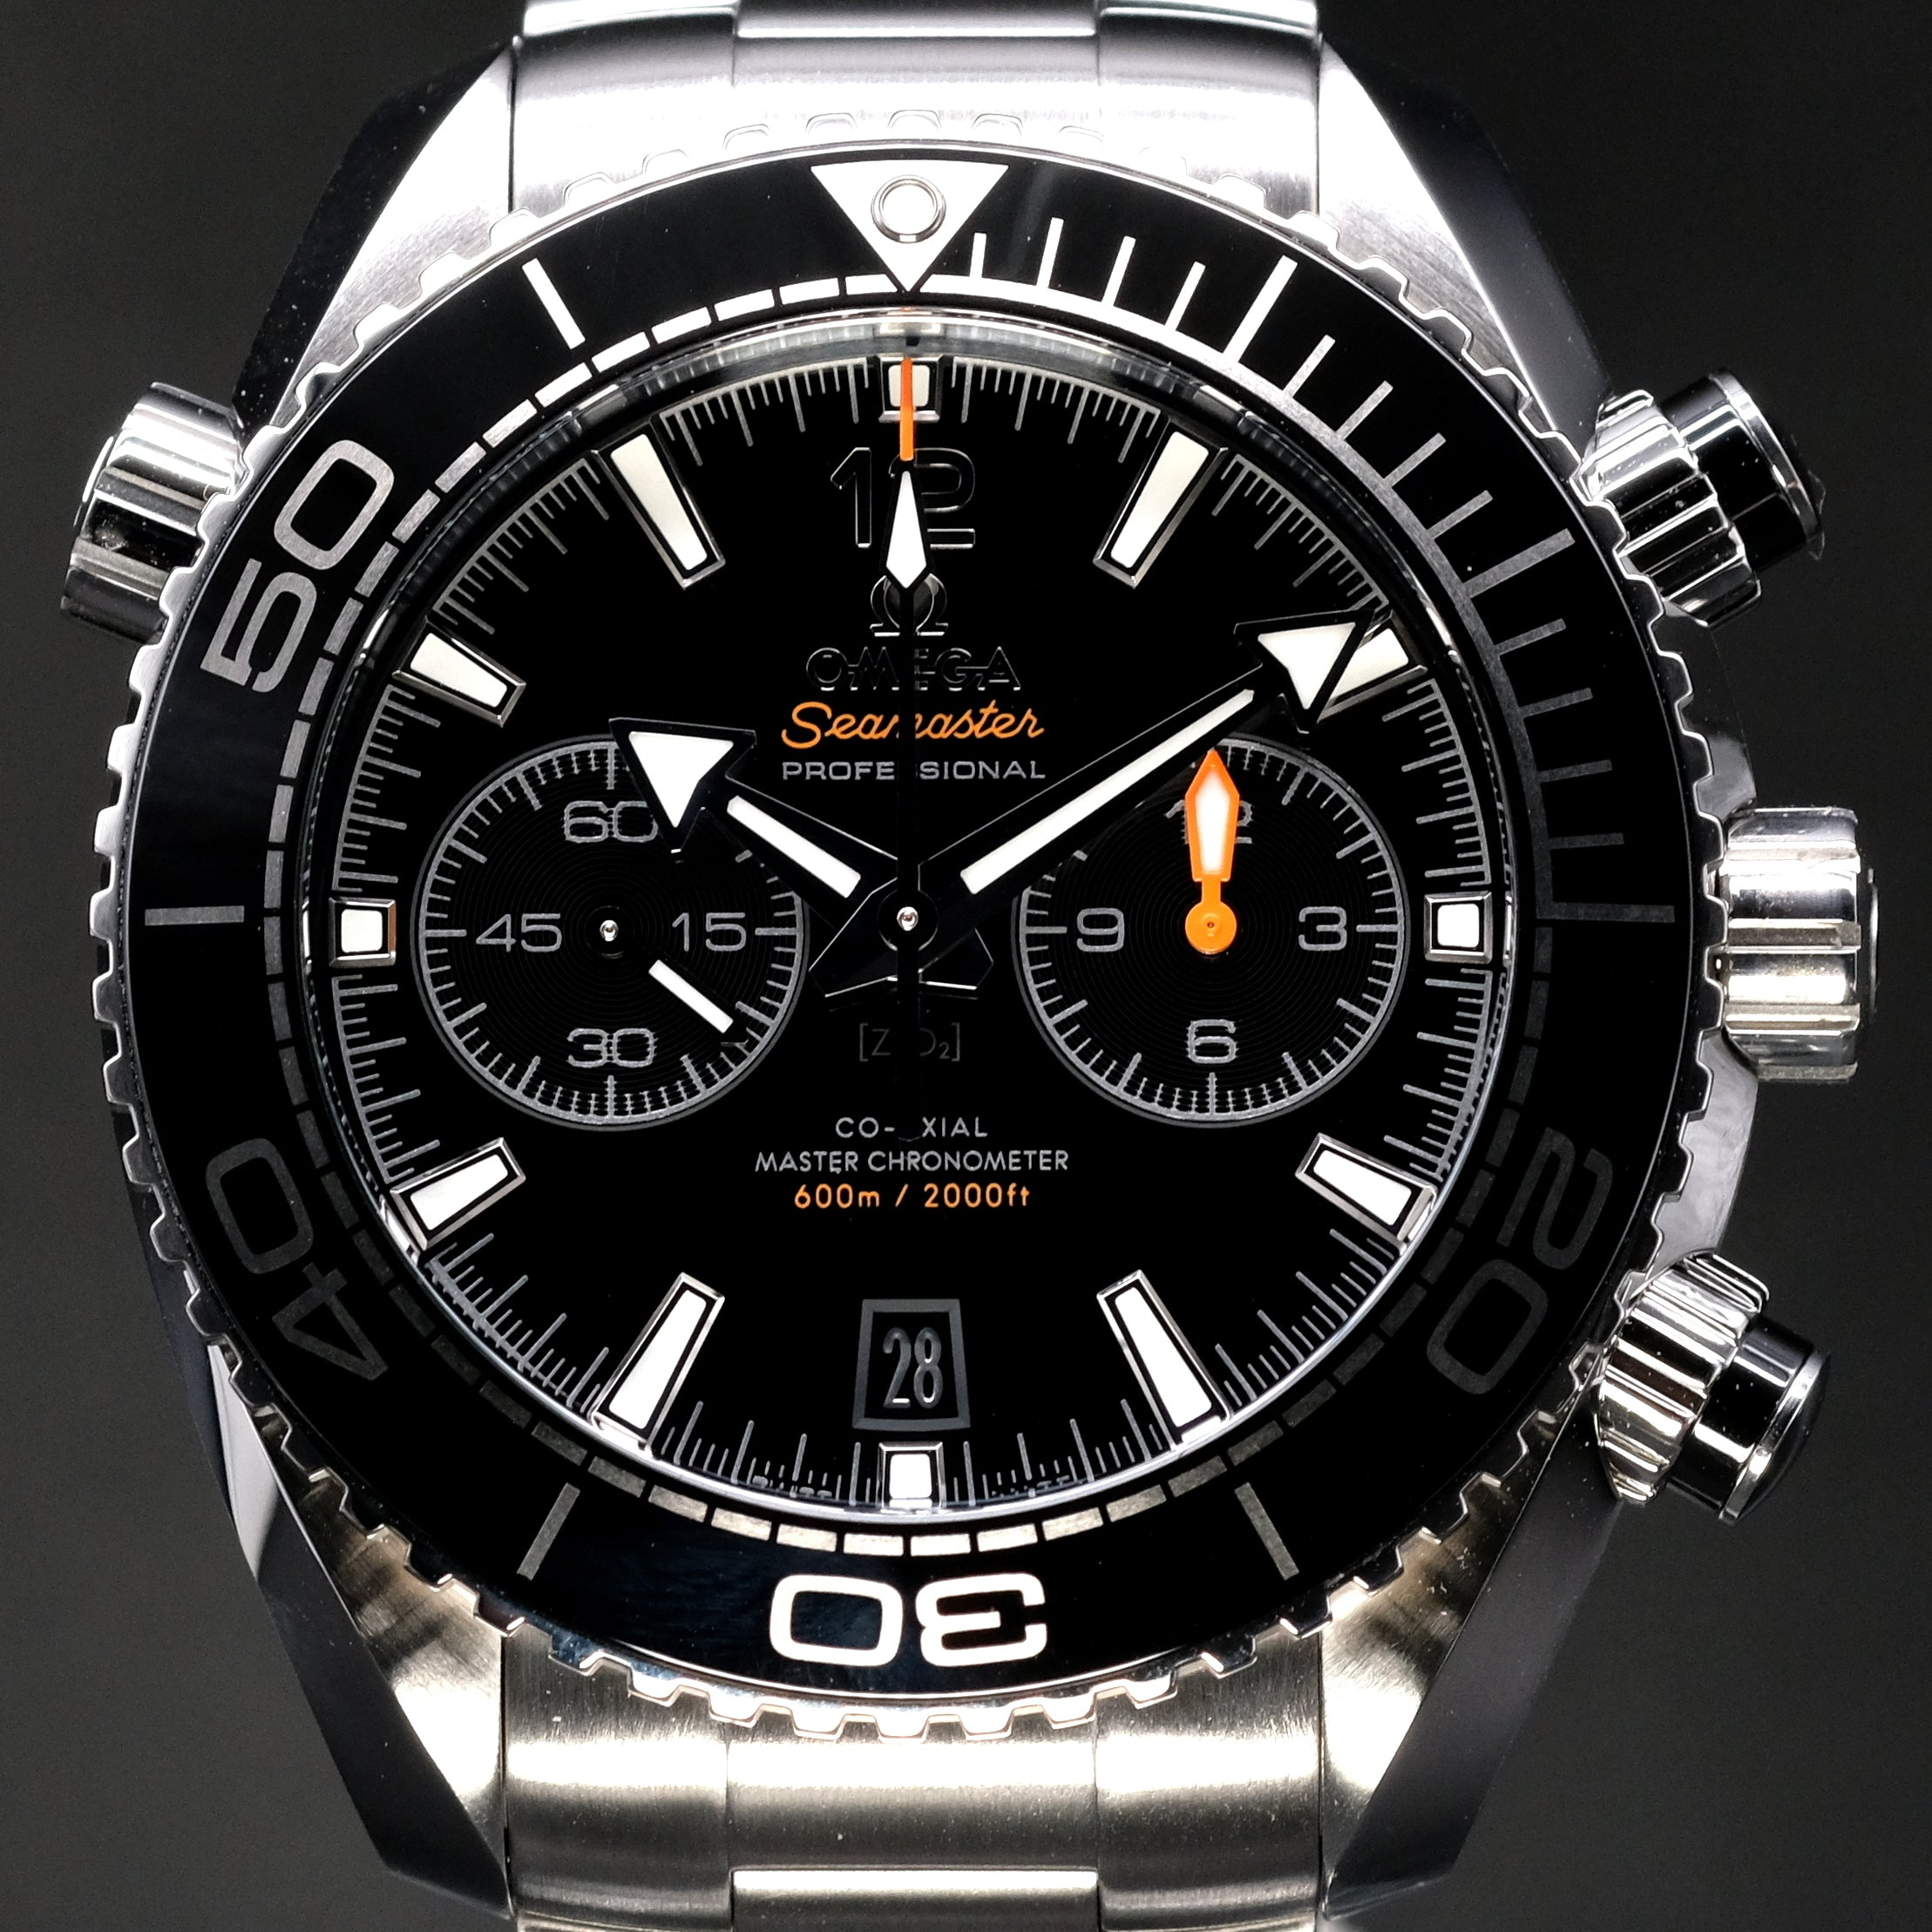 [Brand New Watch] Omega Seamaster Planet Ocean 600m Co-Axial Master Chronometer Chronograph 45.5mm 215.30.46.51.01.001